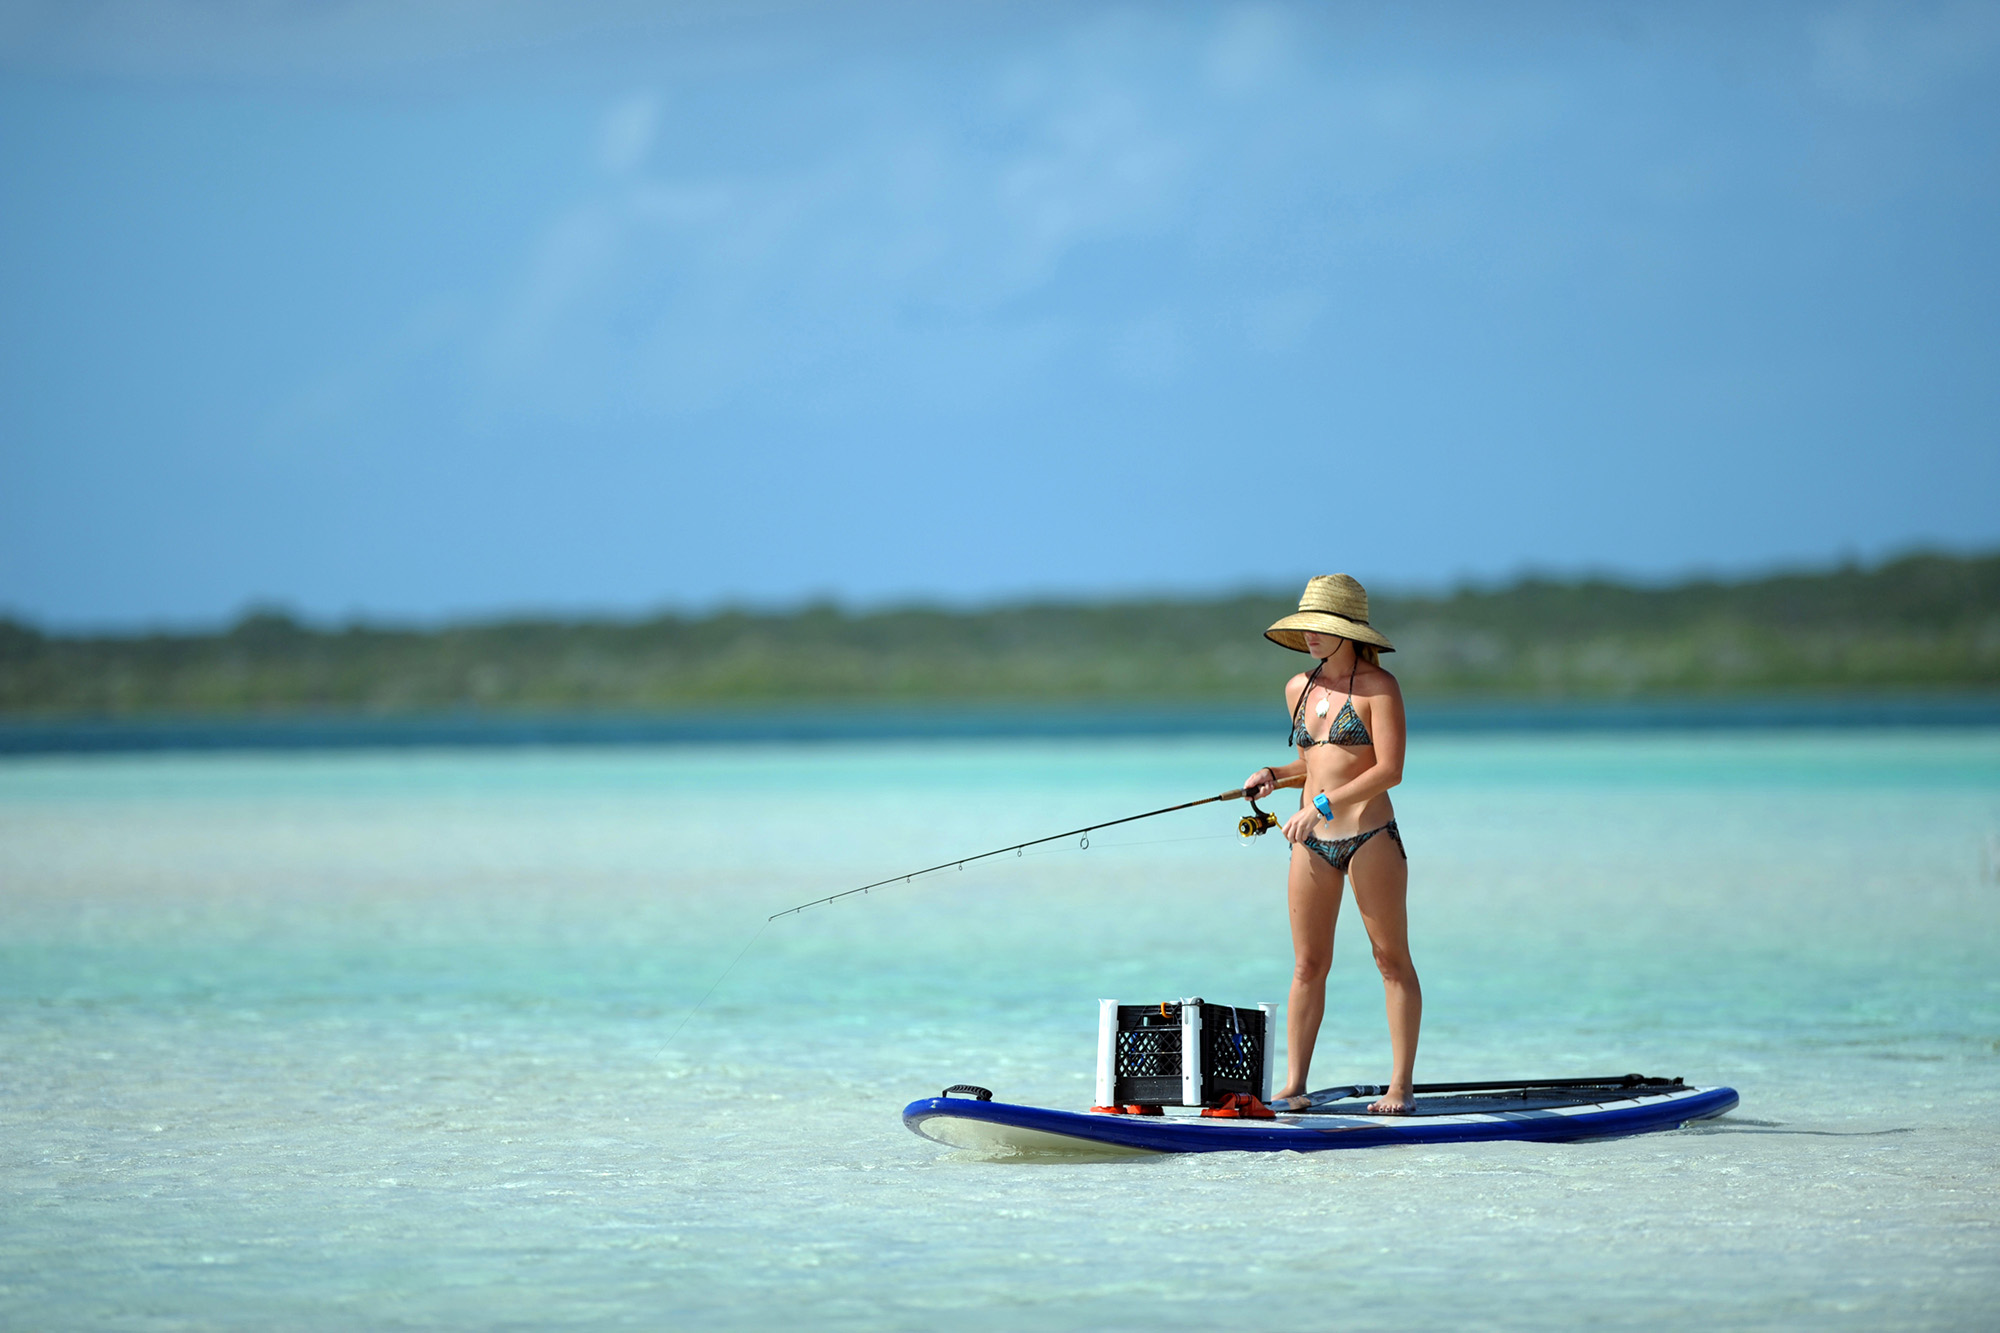 A woman fishing on a standup paddleboard in shallow tropical water